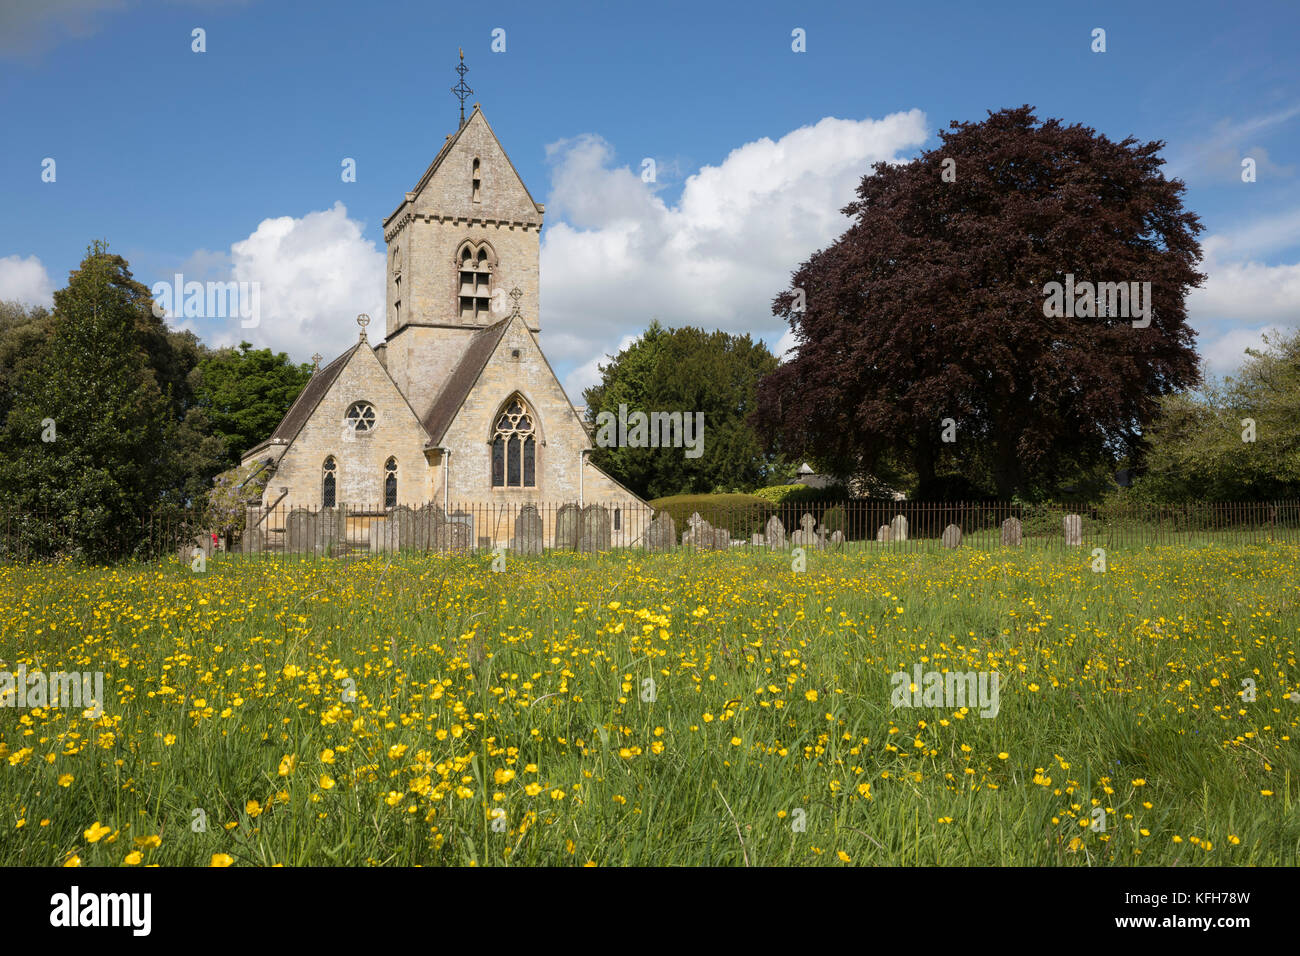 St Nicholas's church and field of yellow buttercups in spring, Hatherop, Cotswolds, Gloucestershire, England, - Stock Image